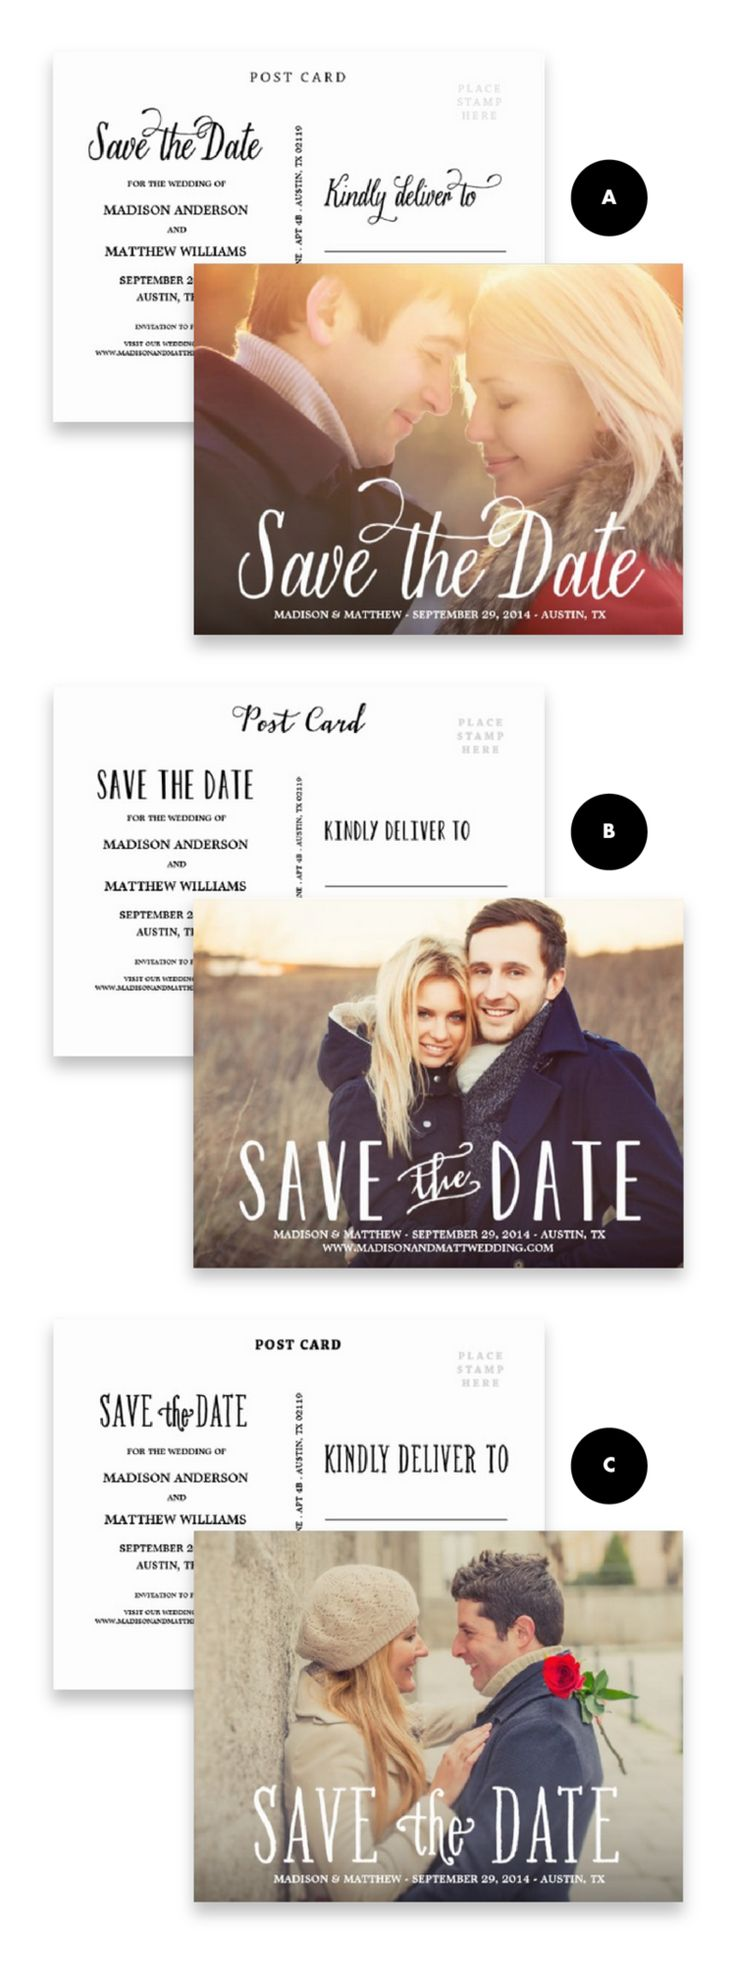 Save the Date Postcards like the set up of return address in the middle and the kindly deliver to